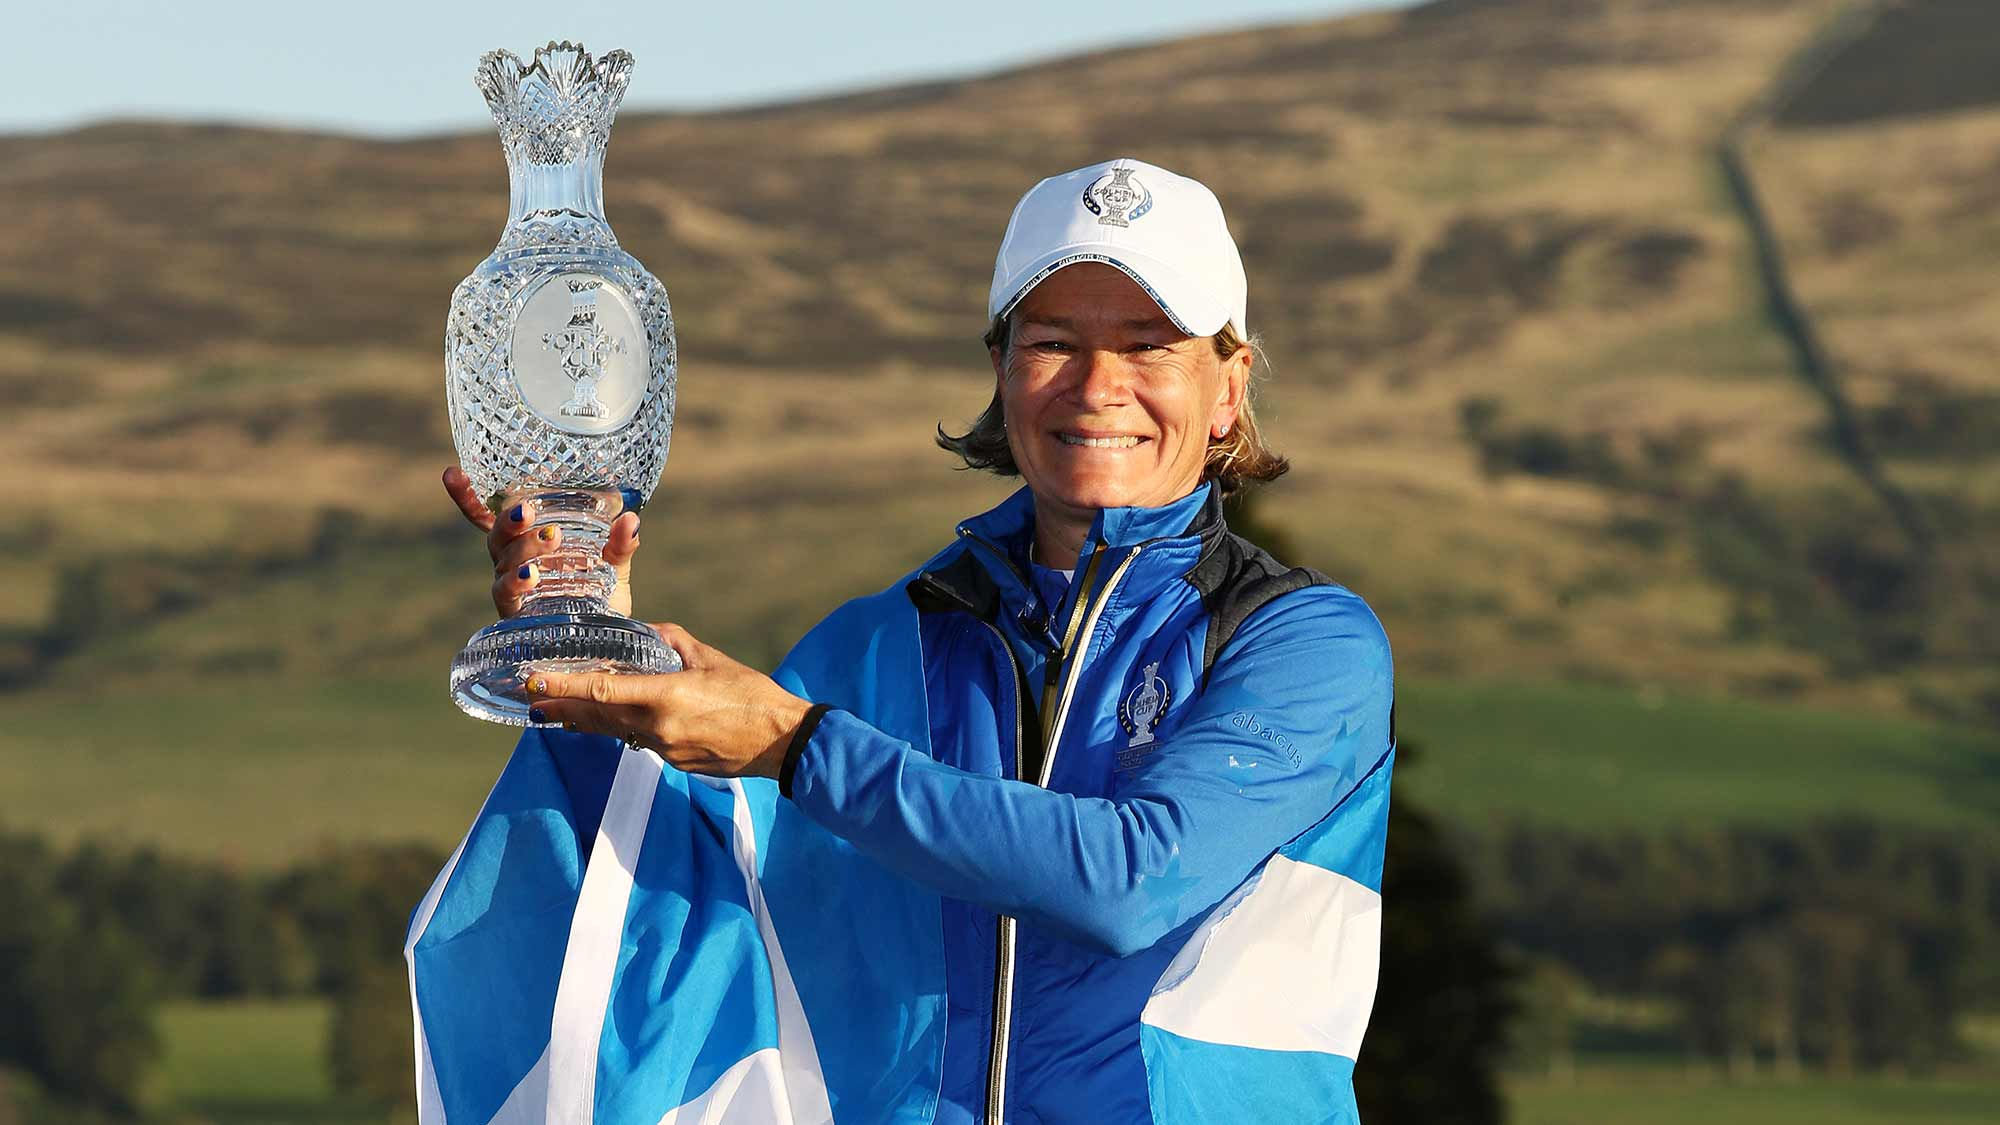 Team Europe captain Catriona Matthew celebrates her teams win with the Solheim Cup during the final day singles matches of the Solheim Cup at Gleneagles on September 15, 2019 in Auchterarder, Scotland